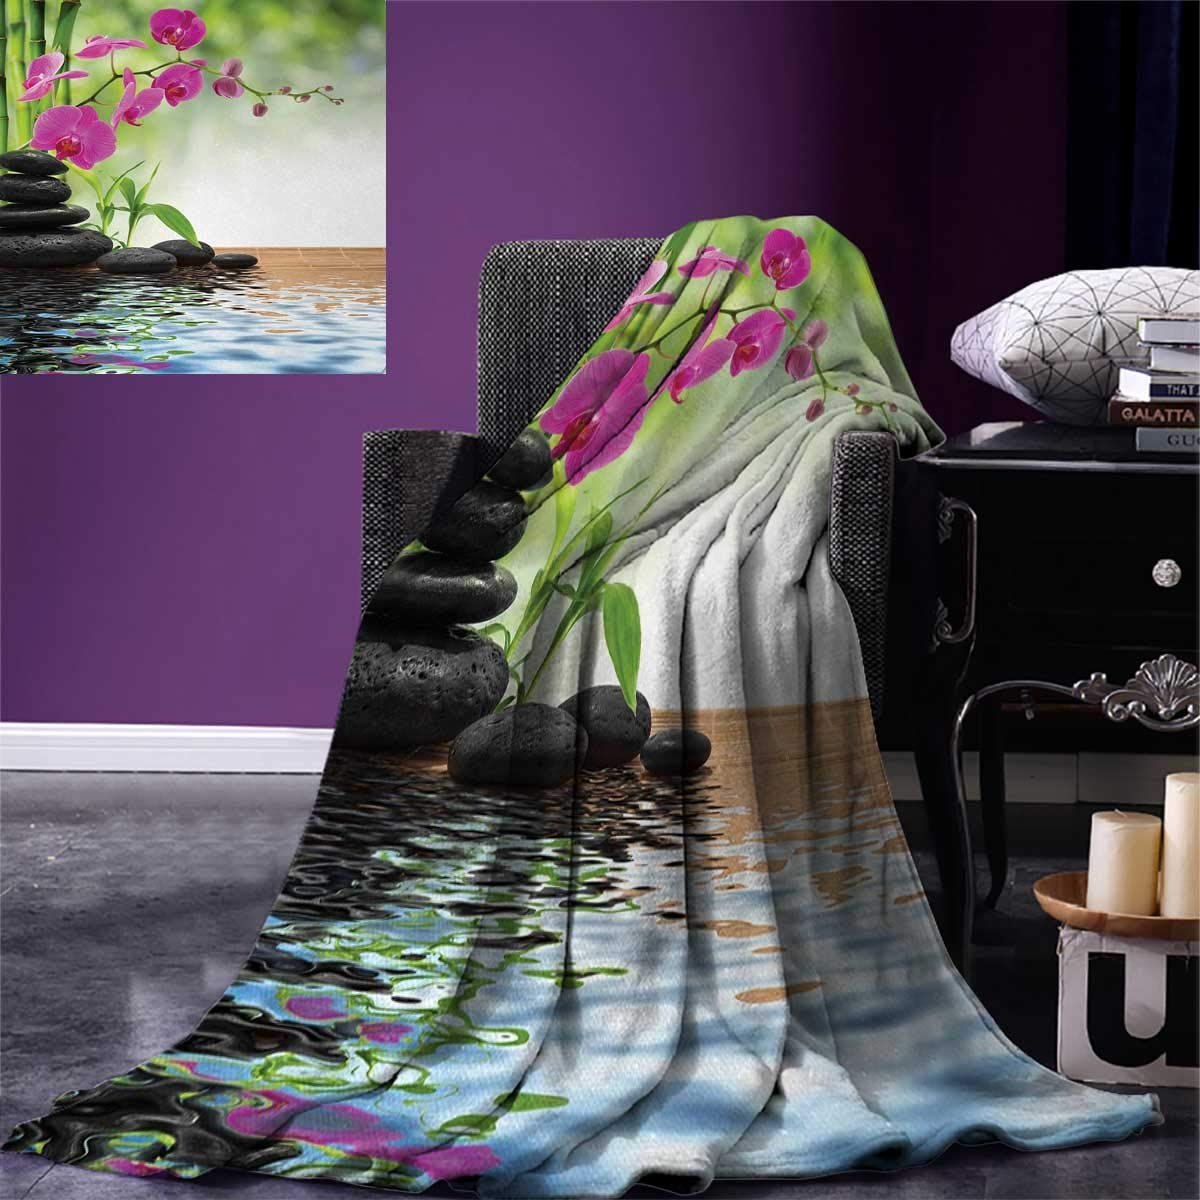 smallbeefly Spa Super Soft Lightweight Blanket Composition Bamboo Tree Floor Mat Orchid Stones Wellness Greenery Oversized Travel Throw Cover Blanket 90''x70'' Fuchsia Charcoal Grey Lime Green